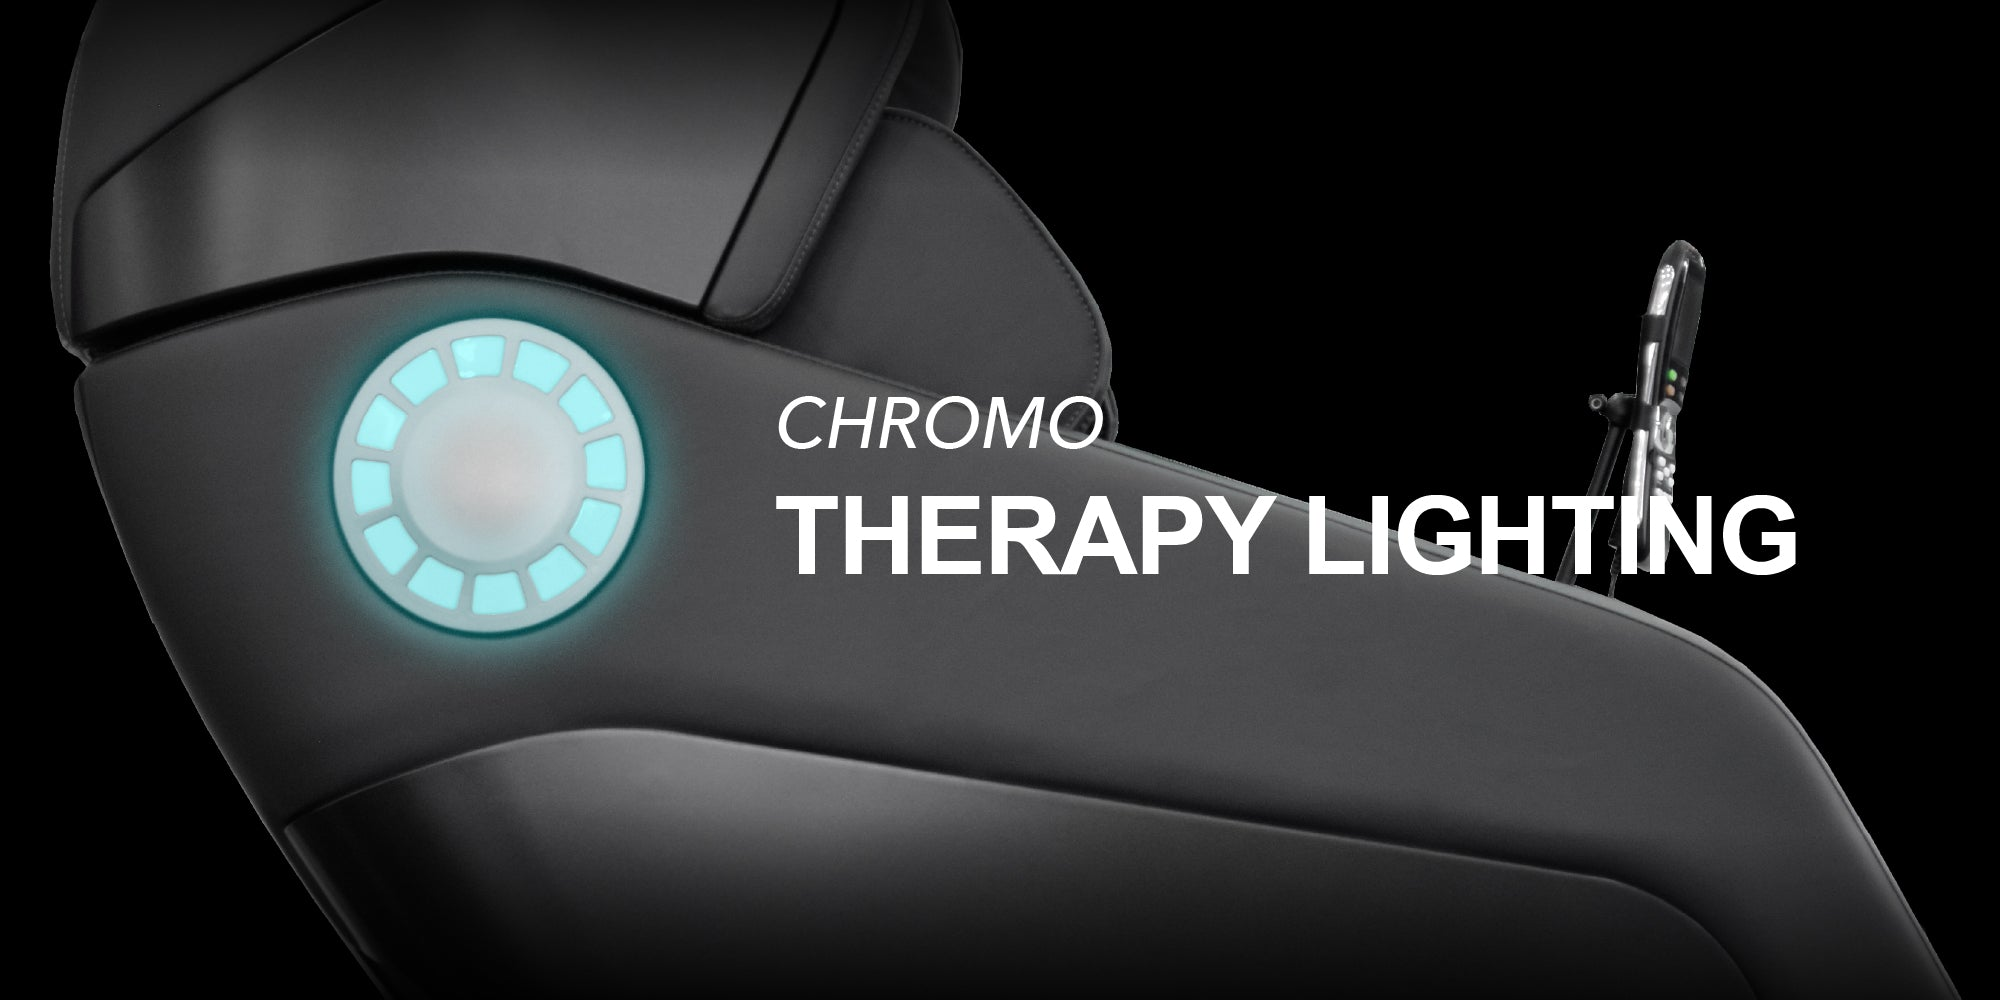 chromo therapy lighting